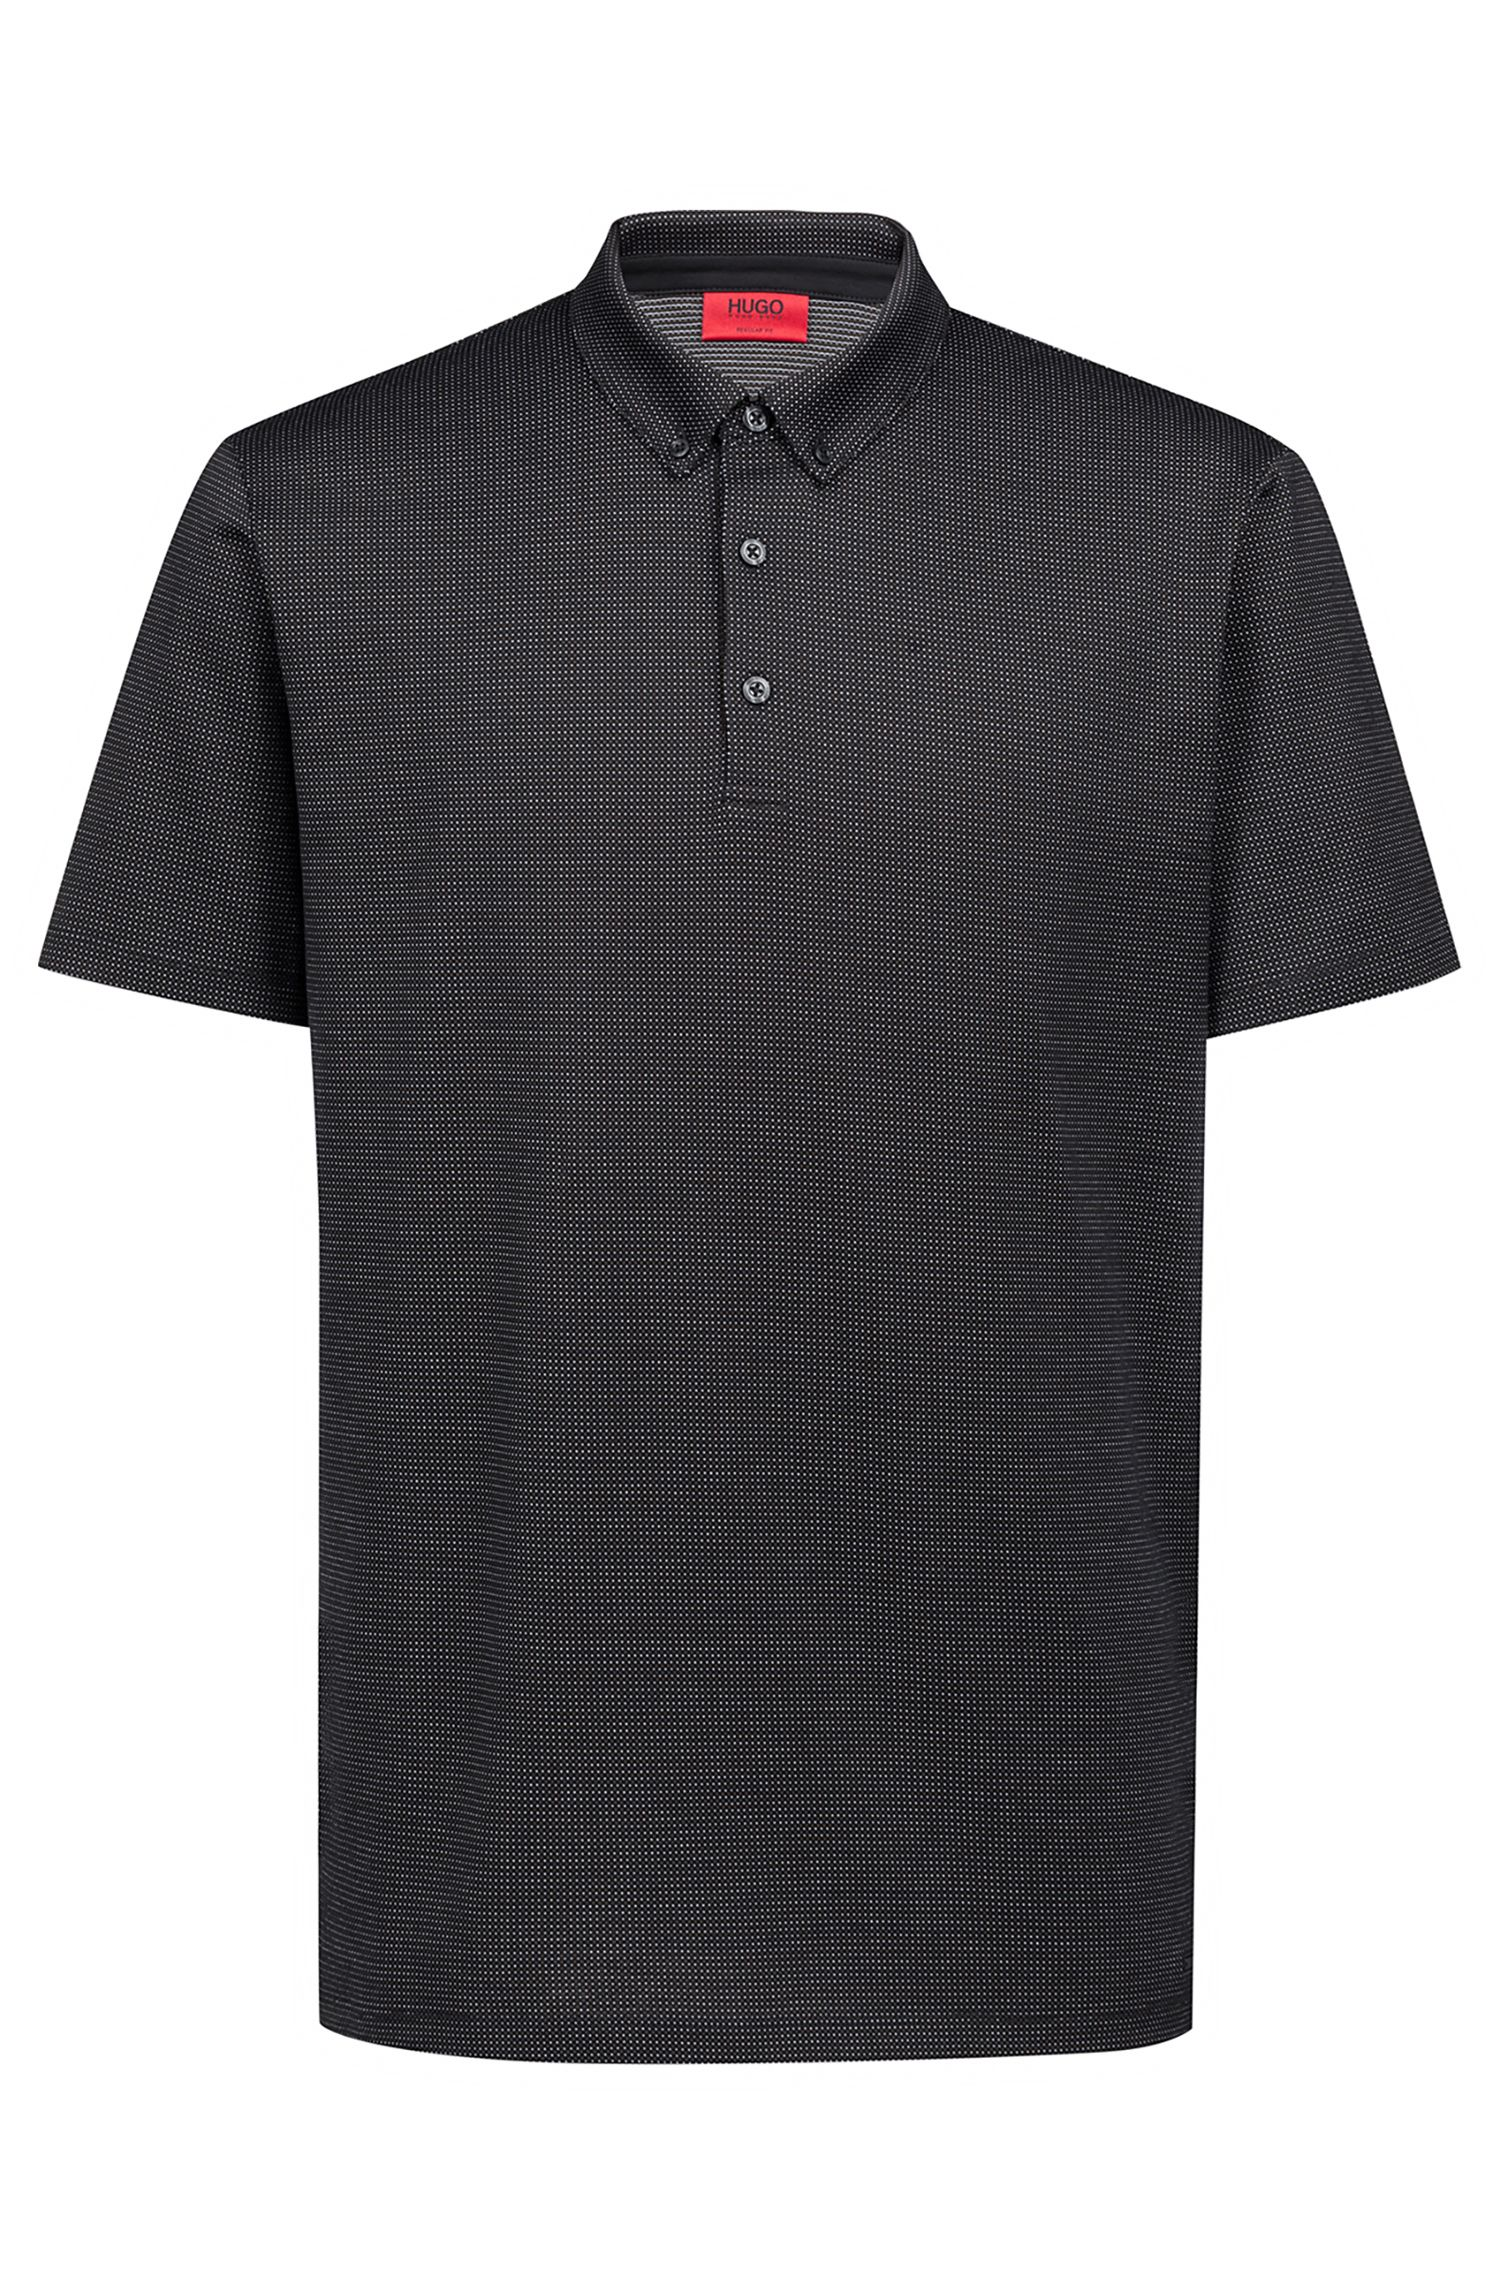 Regular-fit polo shirt in mercerized micro jacquard